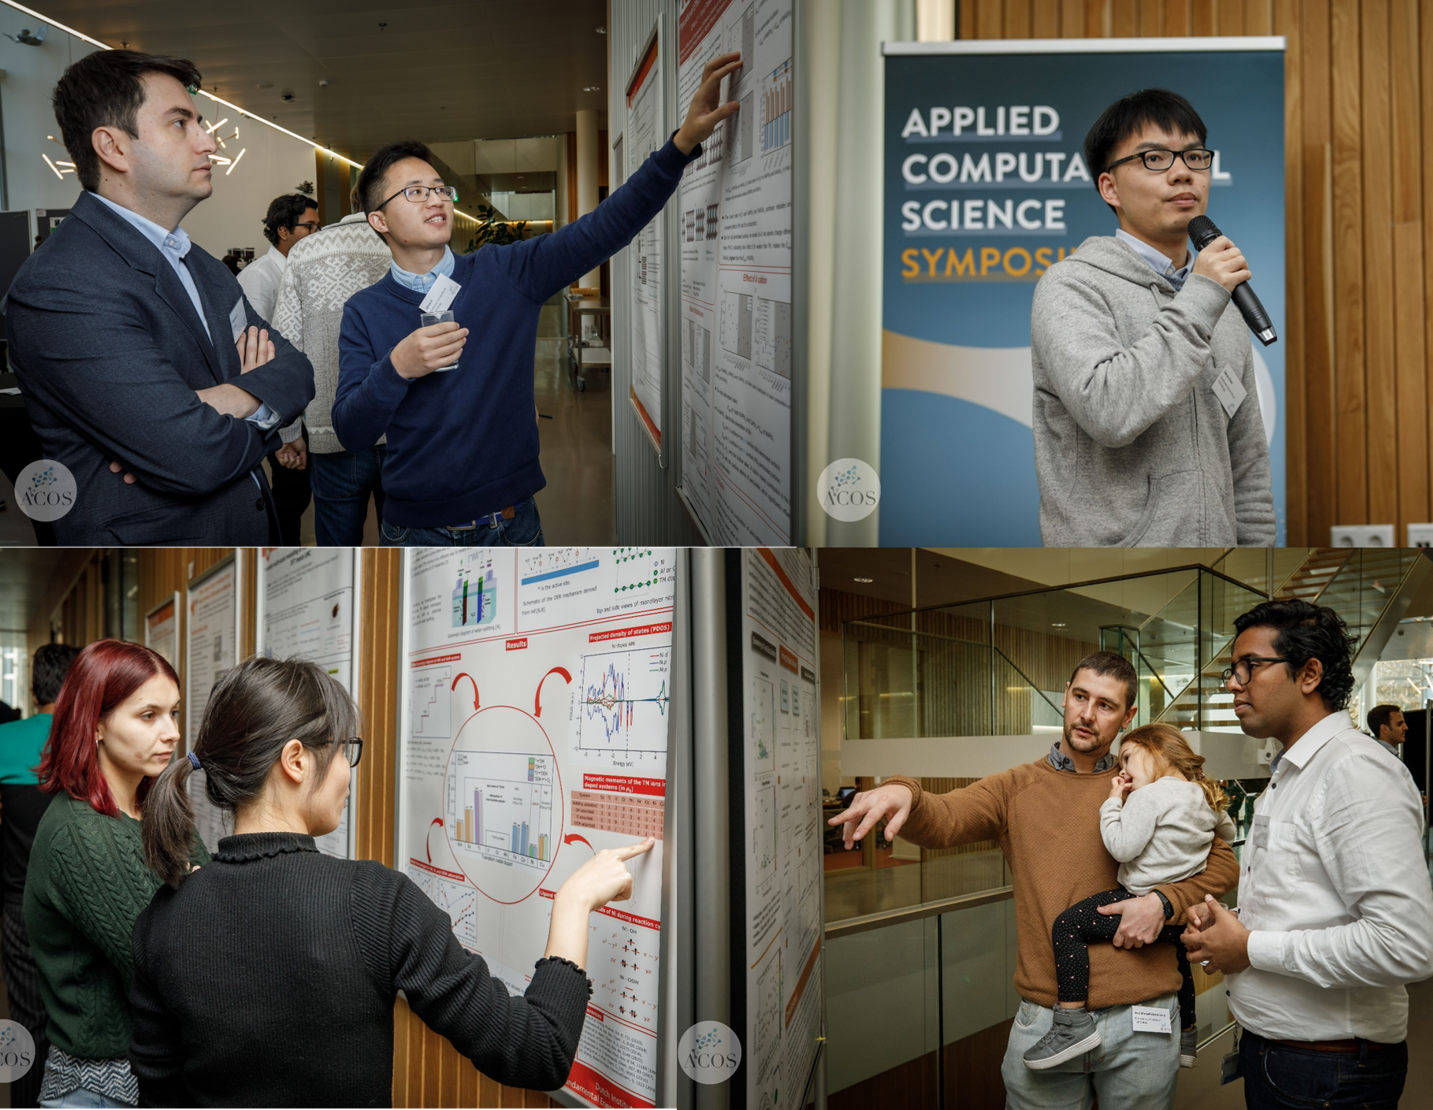 Applied Computational Sciences (ACOS) symposium 2019